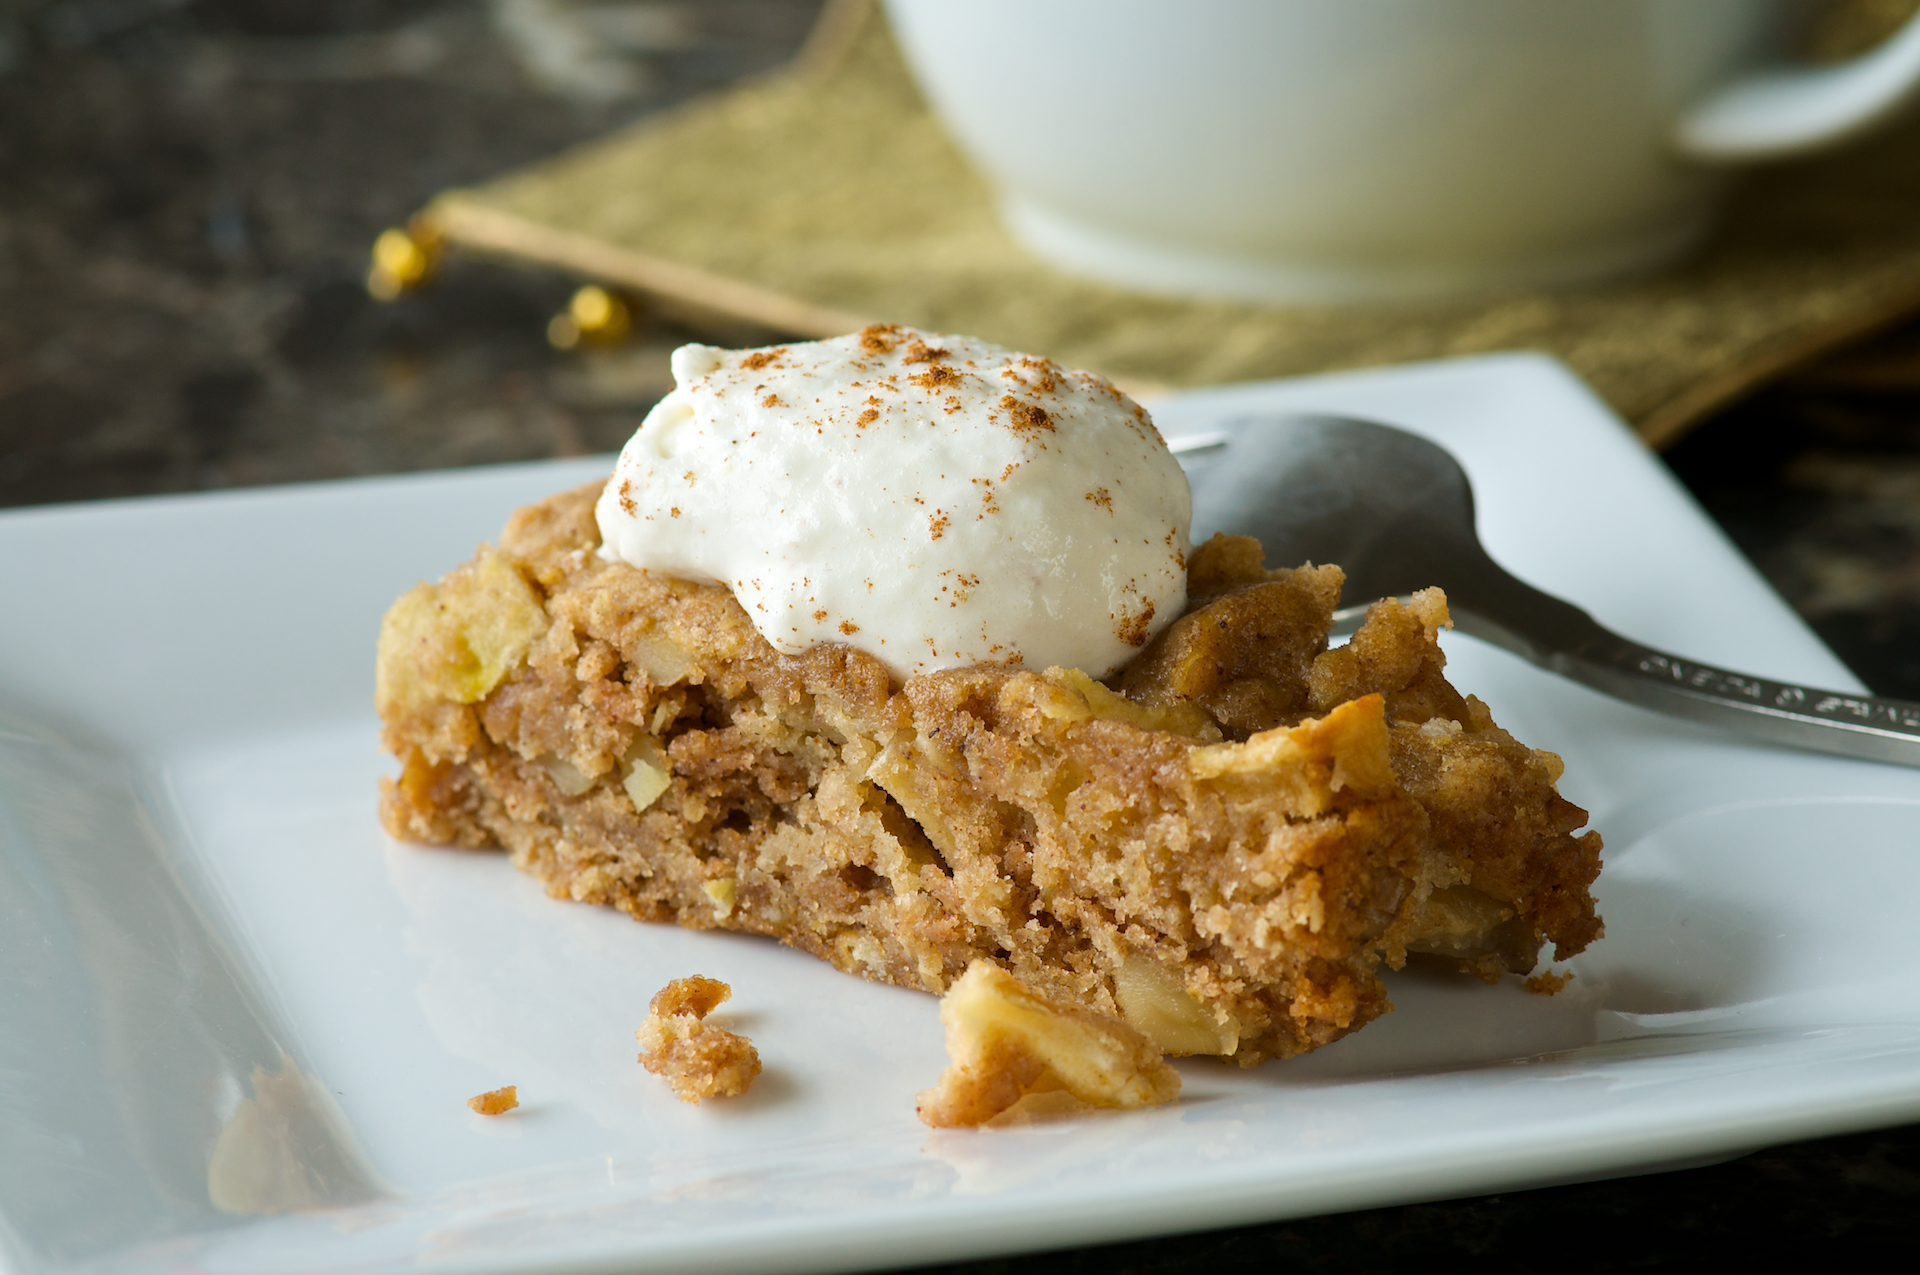 Take a break from the usual brownies and create a dessert that's full of good stuff, like apples and oatmeal. Why Try? First of all, it's sweet and yummy—consider the wholesome goodness of oatmeal and apples as a bonus!